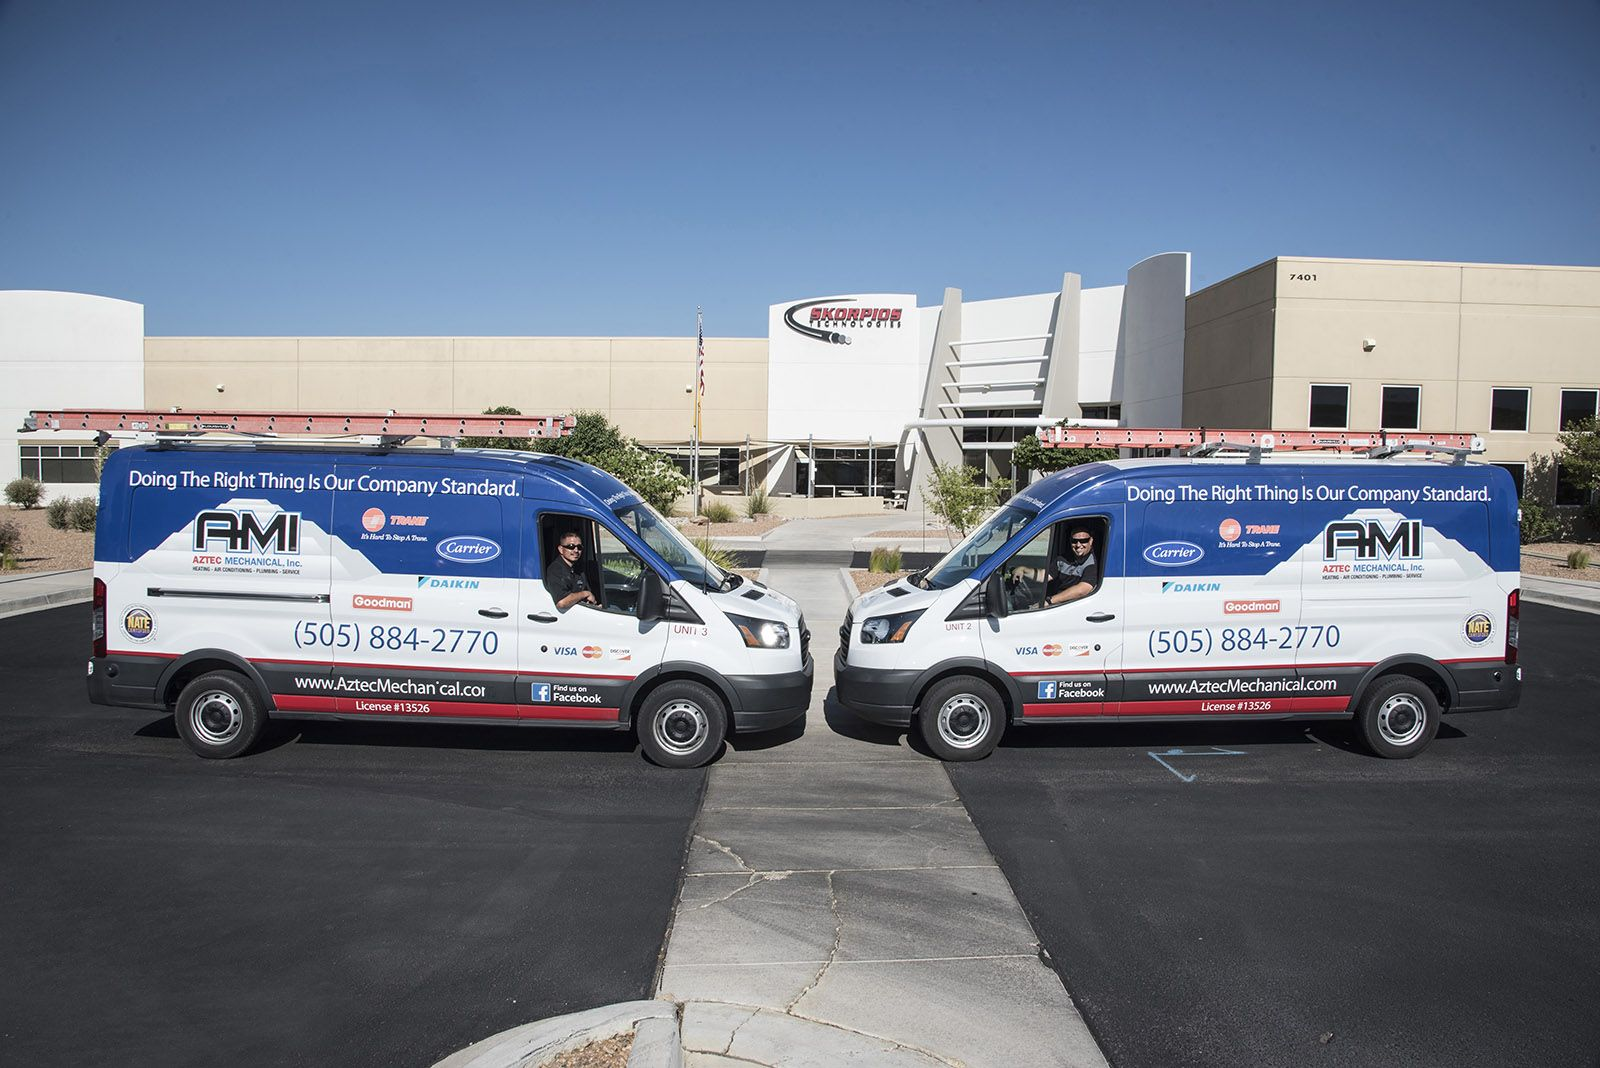 Whether it's an AC service and repair or furnace repair in